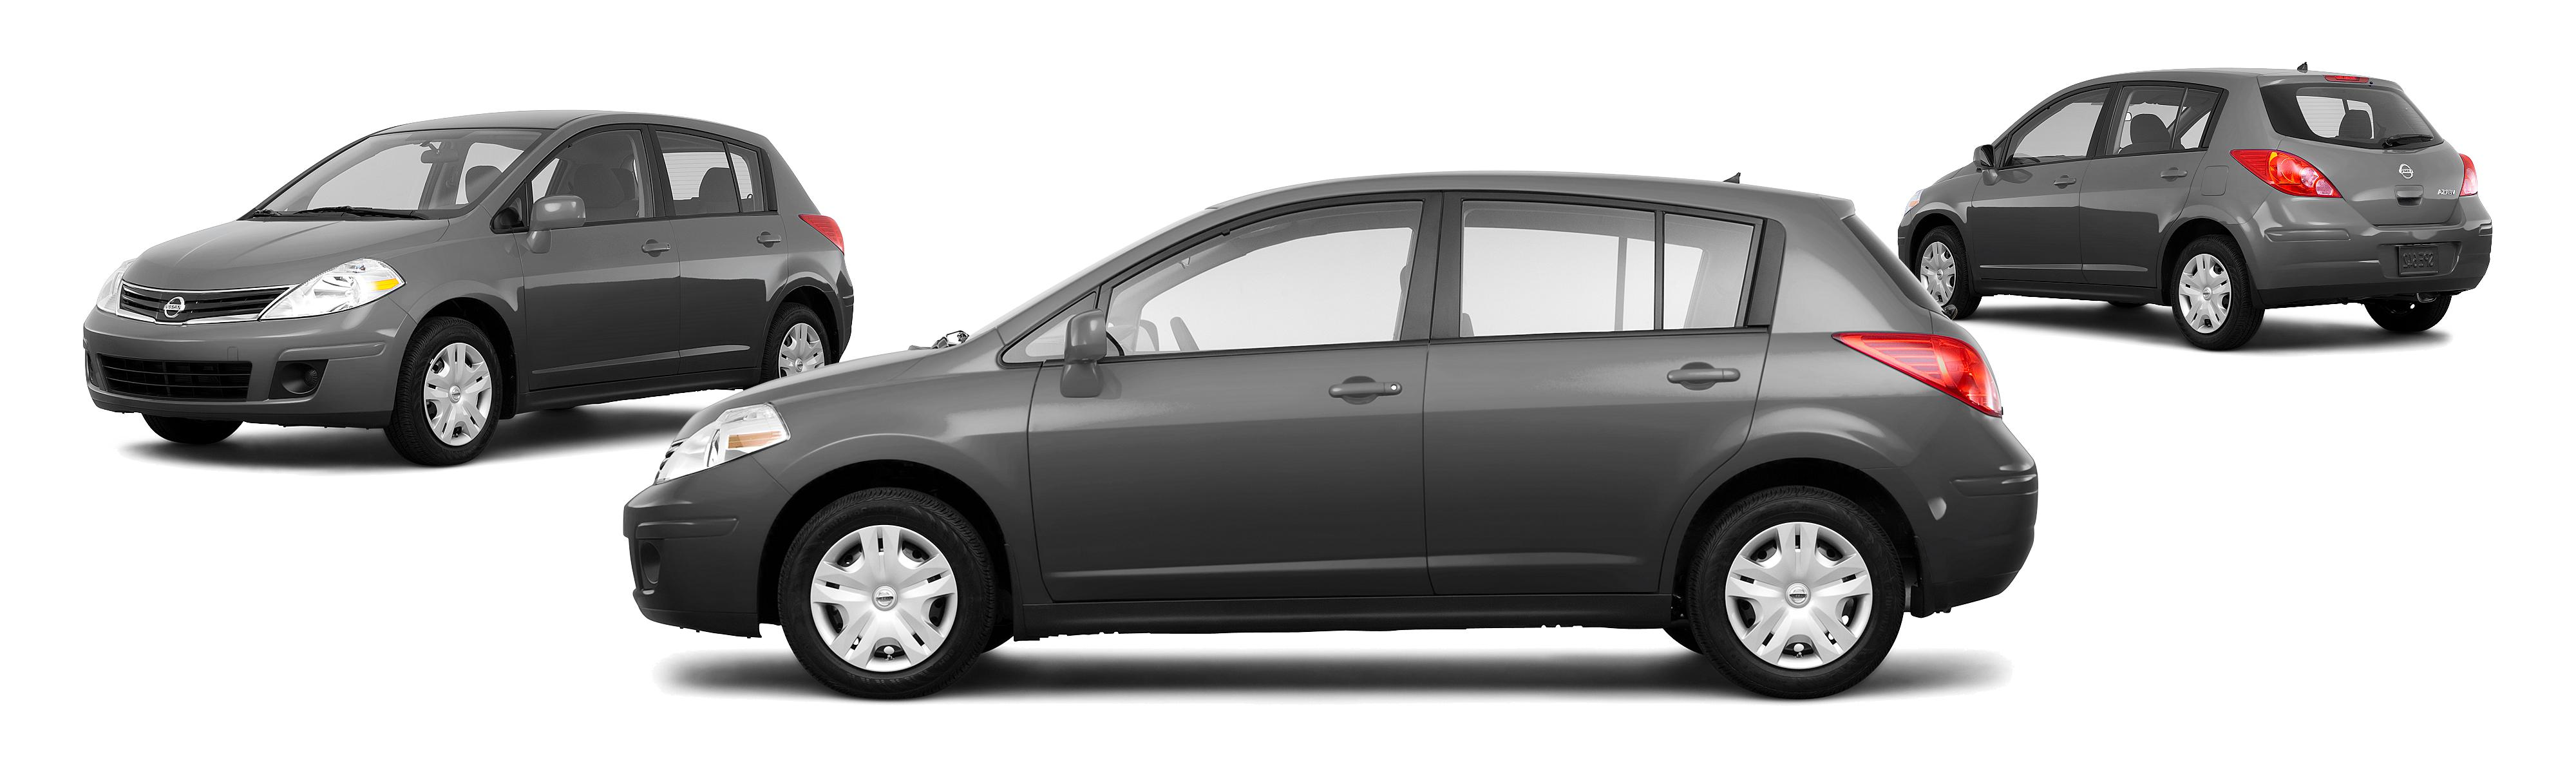 2011 Nissan Versa 1 8 S 4dr Hatchback 4a Research Groovecar